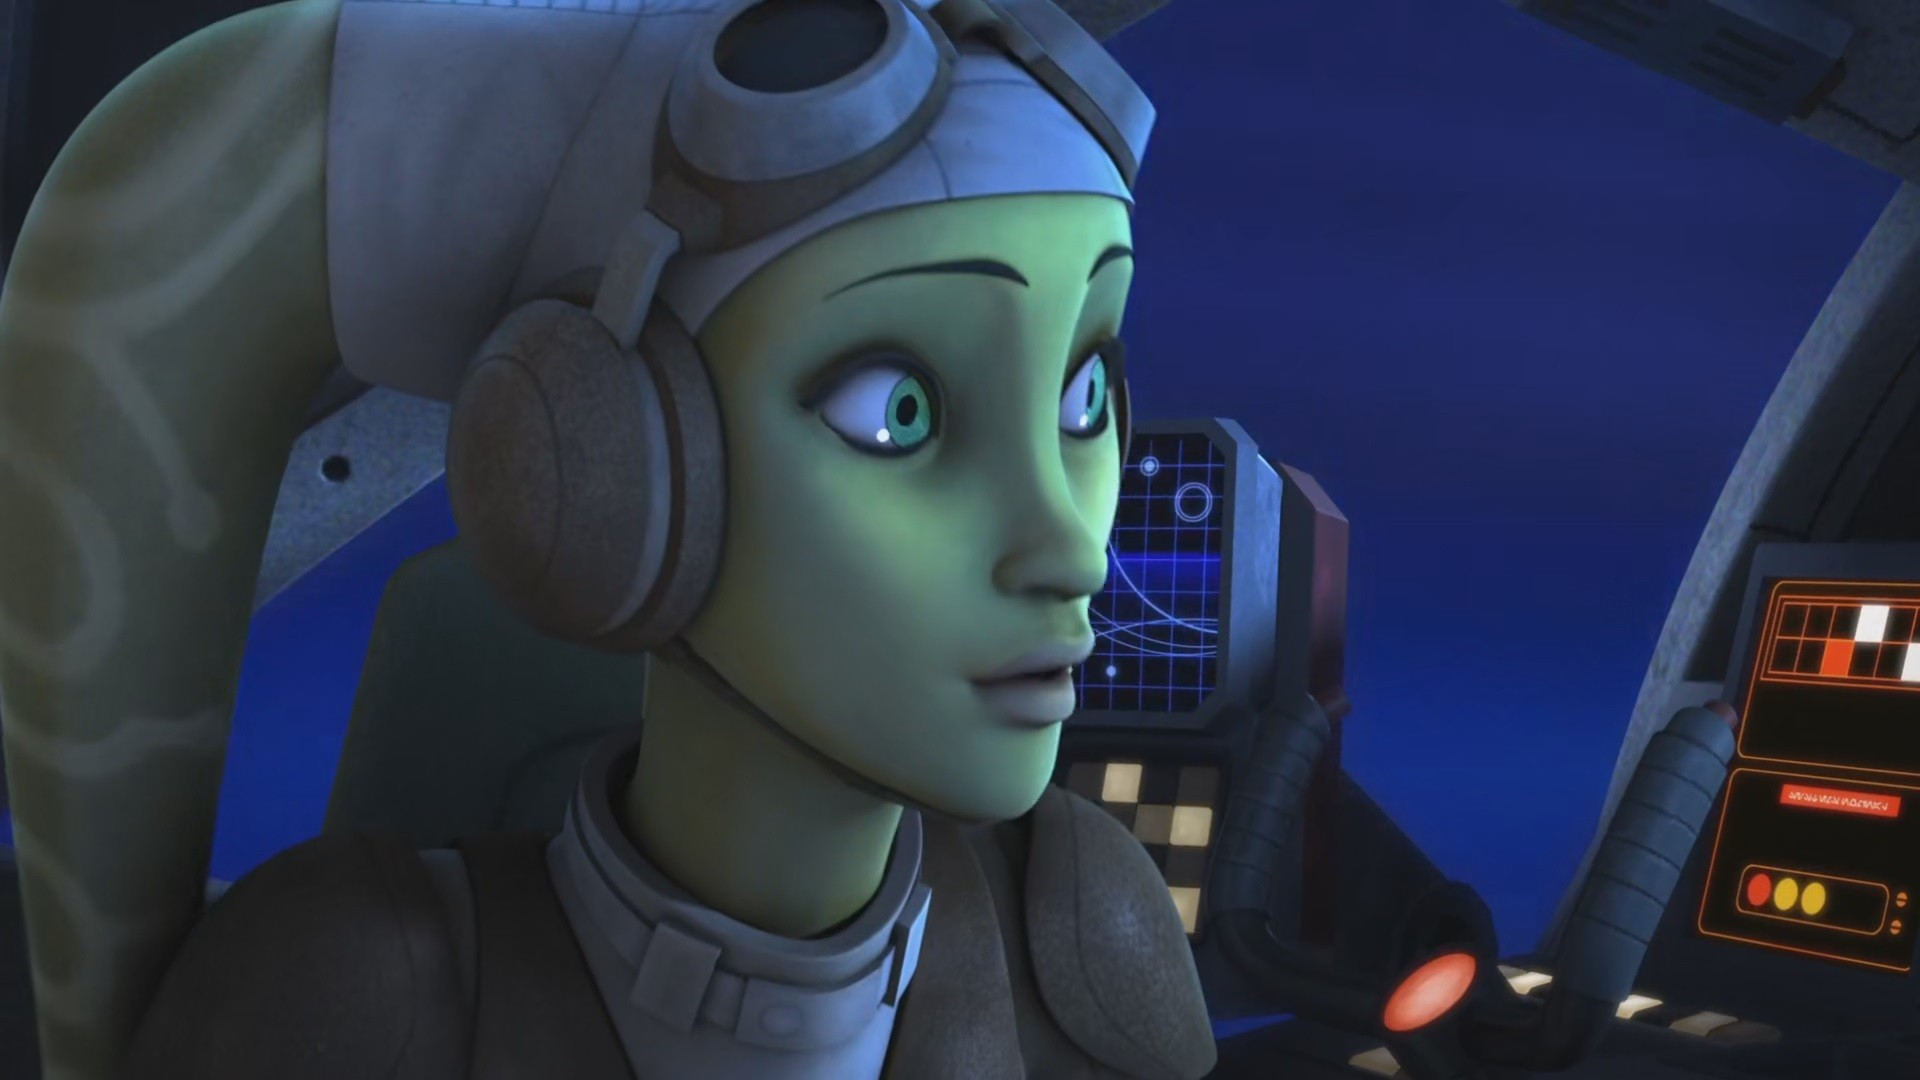 Hera Syndulla Star Wars Rebels Tv Wallpaper Resolution 1920x1080 Id 557619 Wallha Com